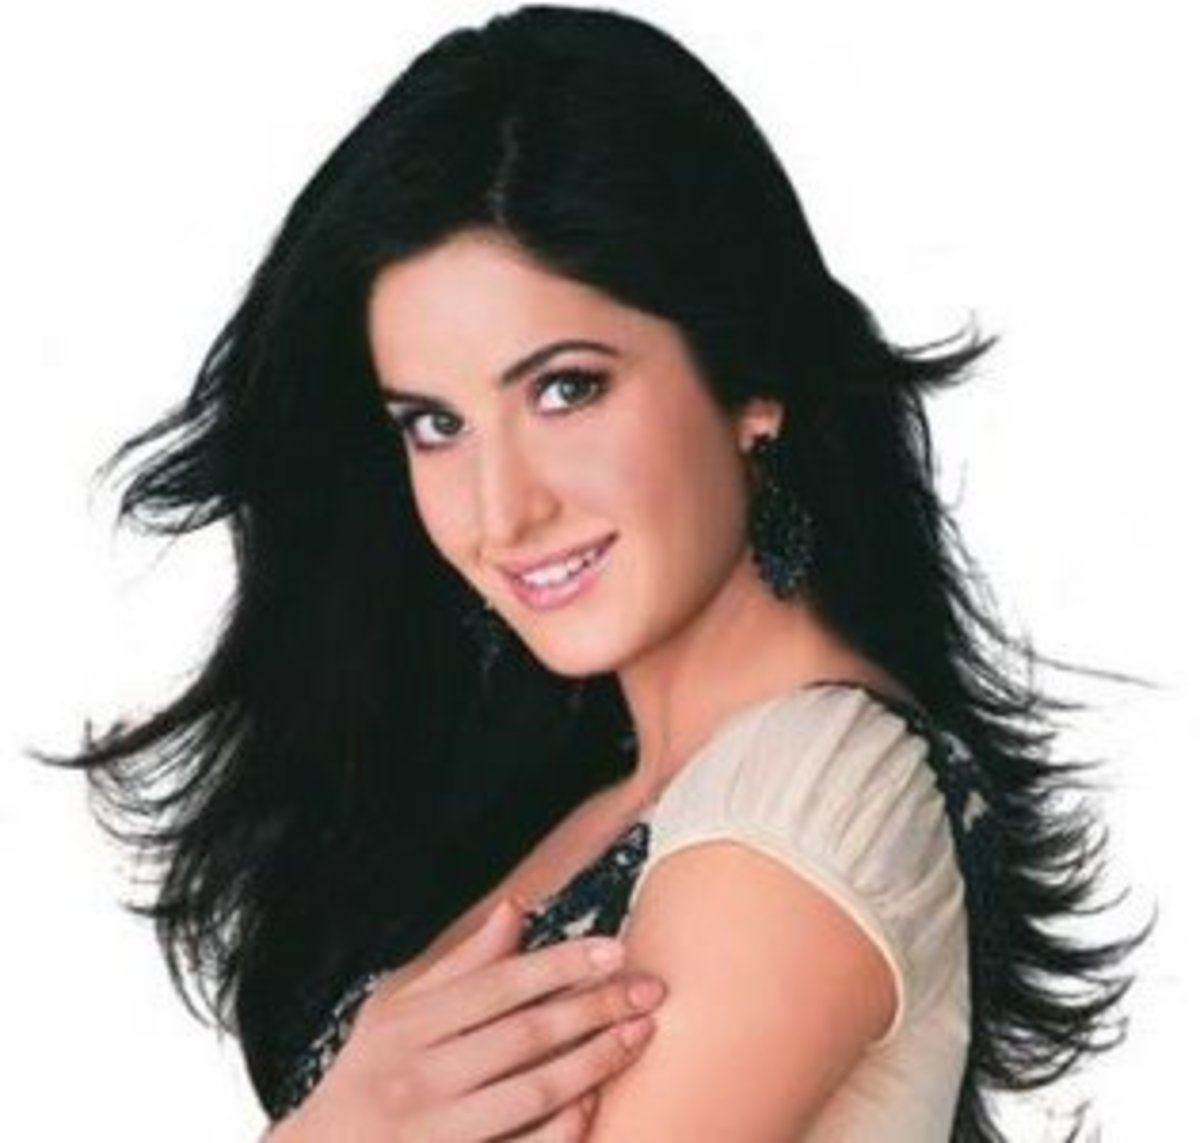 Top 10 Best Katrina Kaif Movies